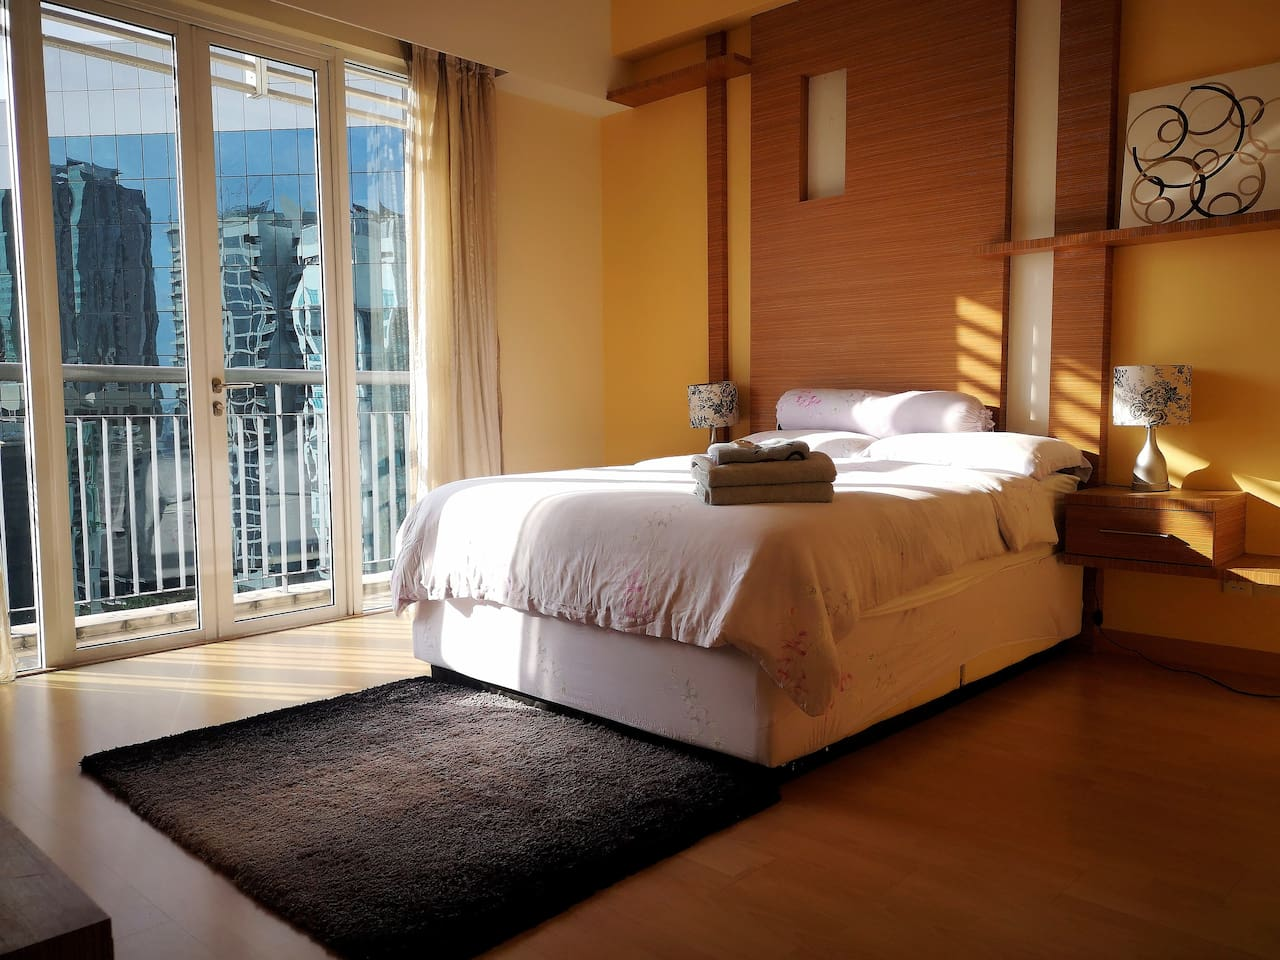 Master bedroom with balcony and KL Tower View :)